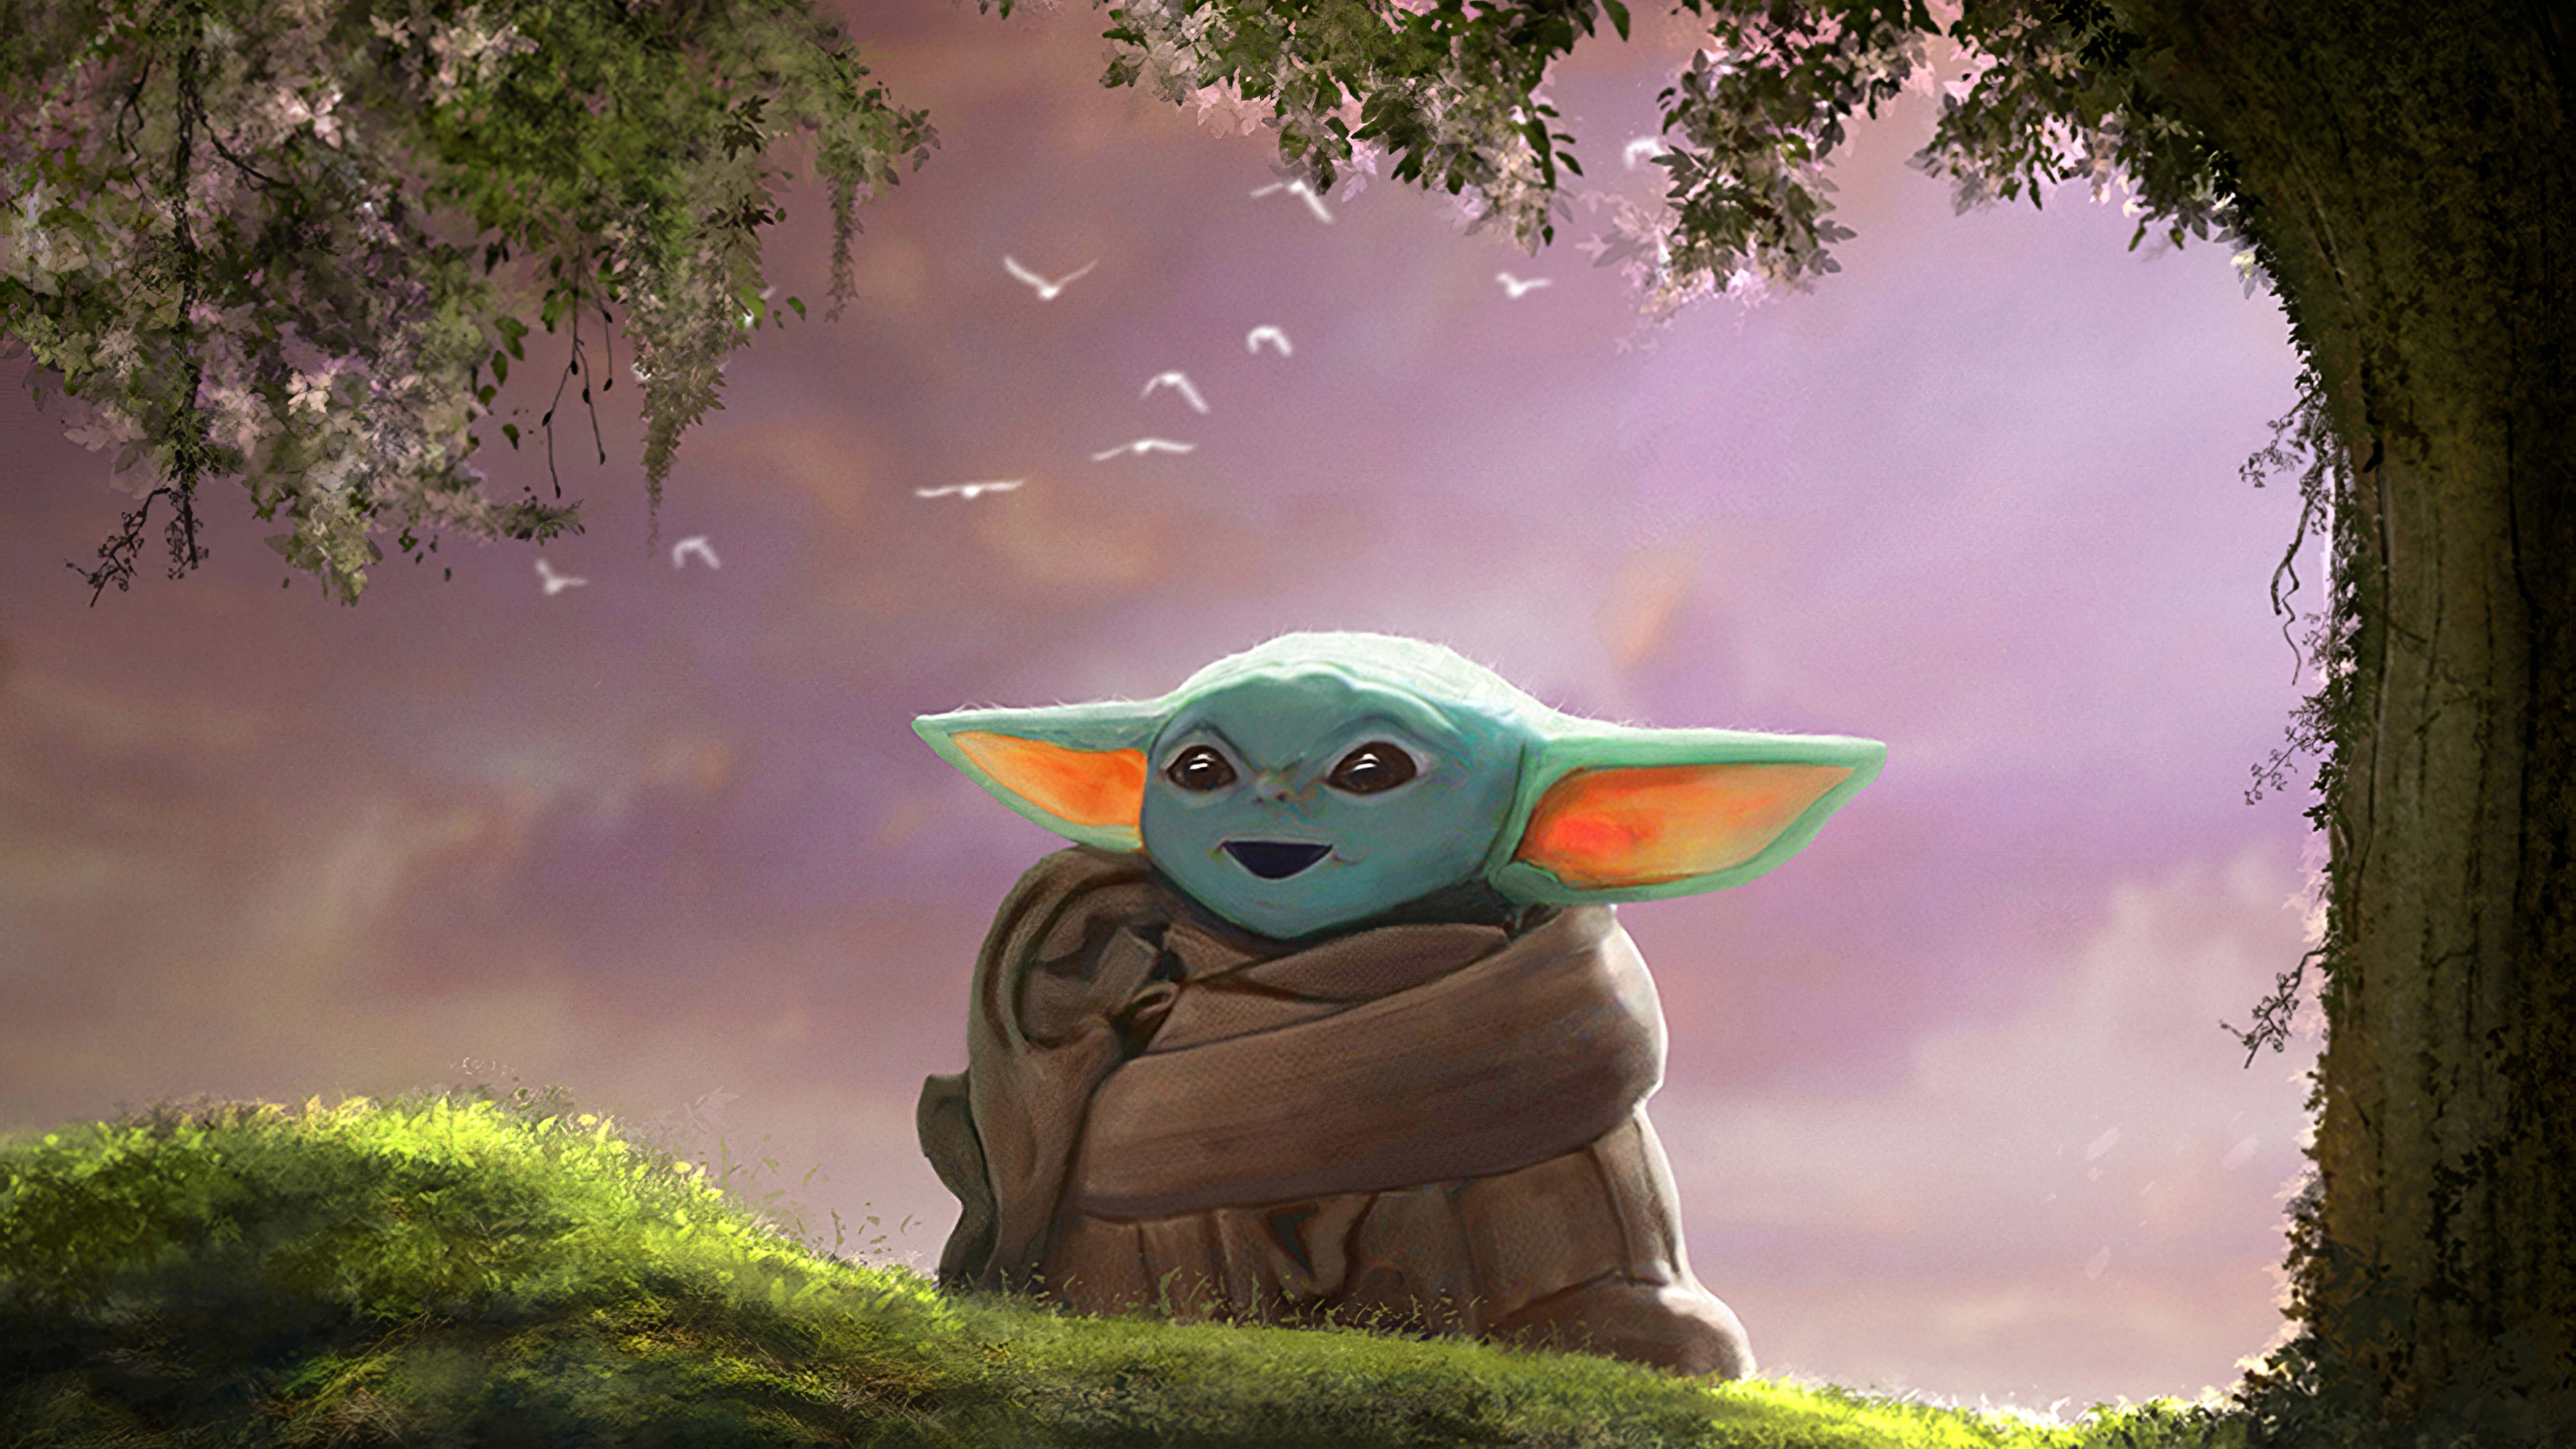 Baby Yoda Fanart 4k Hd Movies 4k Wallpapers Images Backgrounds Photos And Pictures